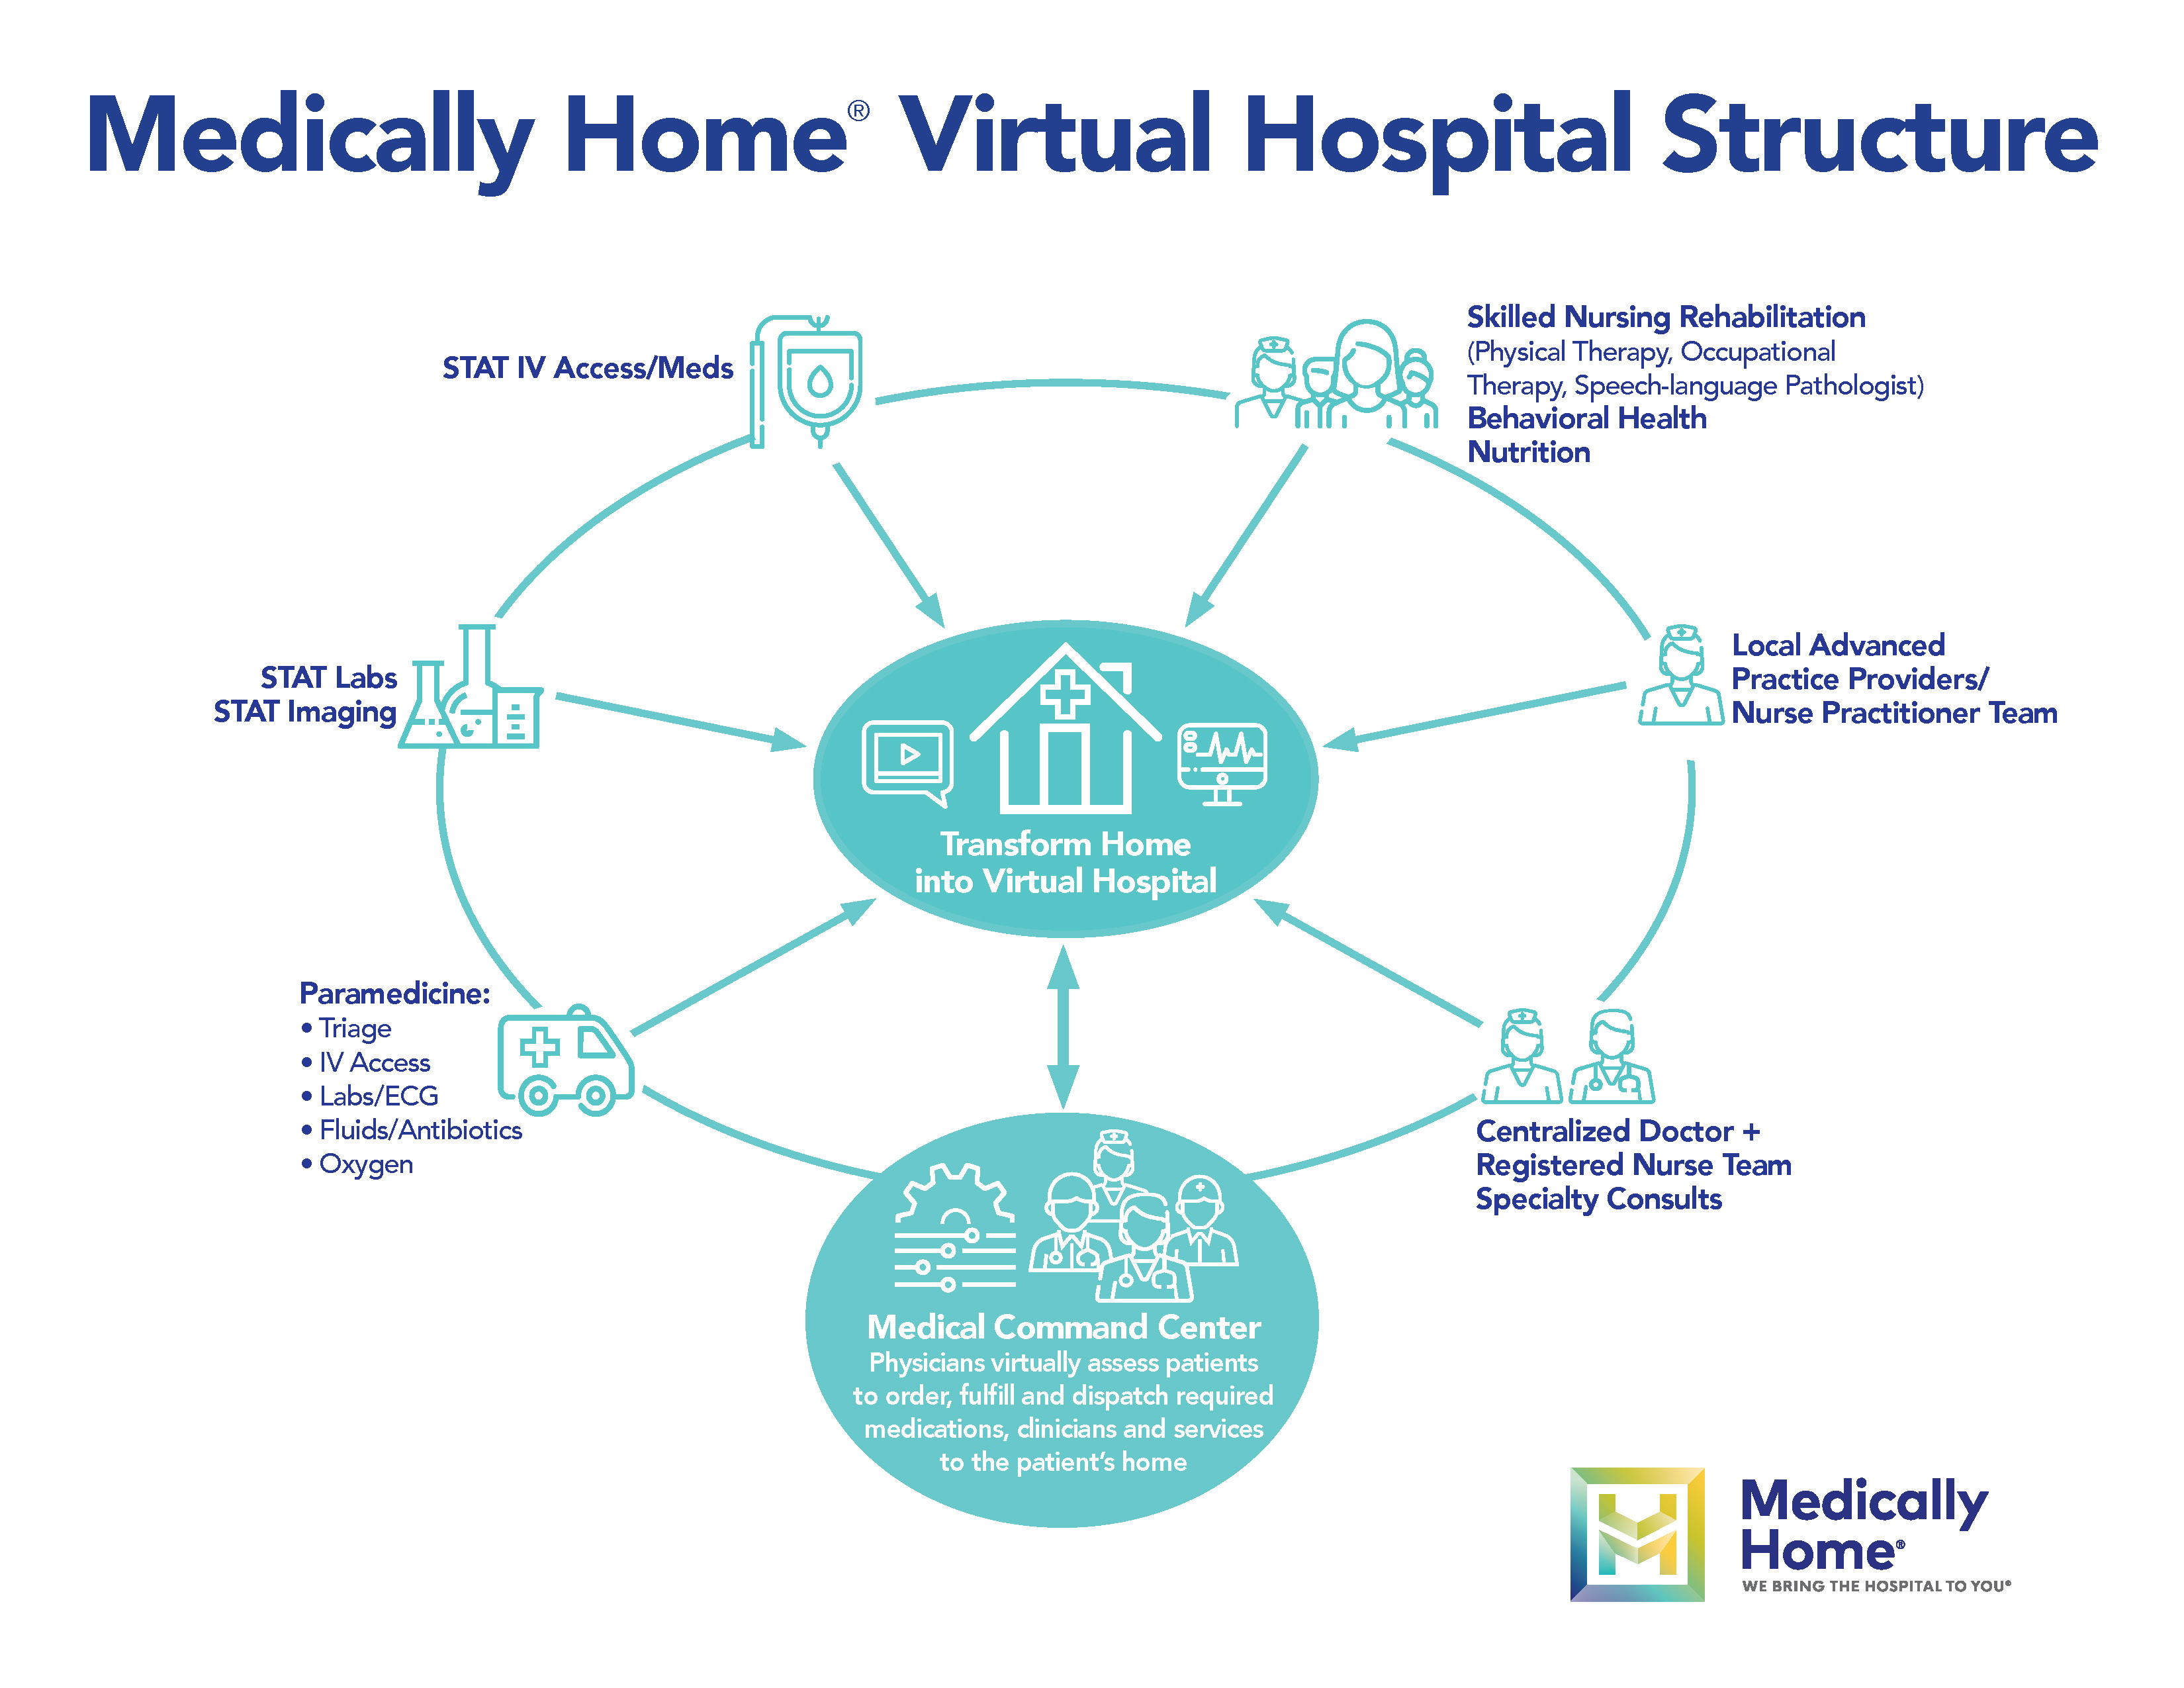 Medically Home draws on its health system partners and community resources, including local paramedics and equipment suppliers, to build a virtual hospital.